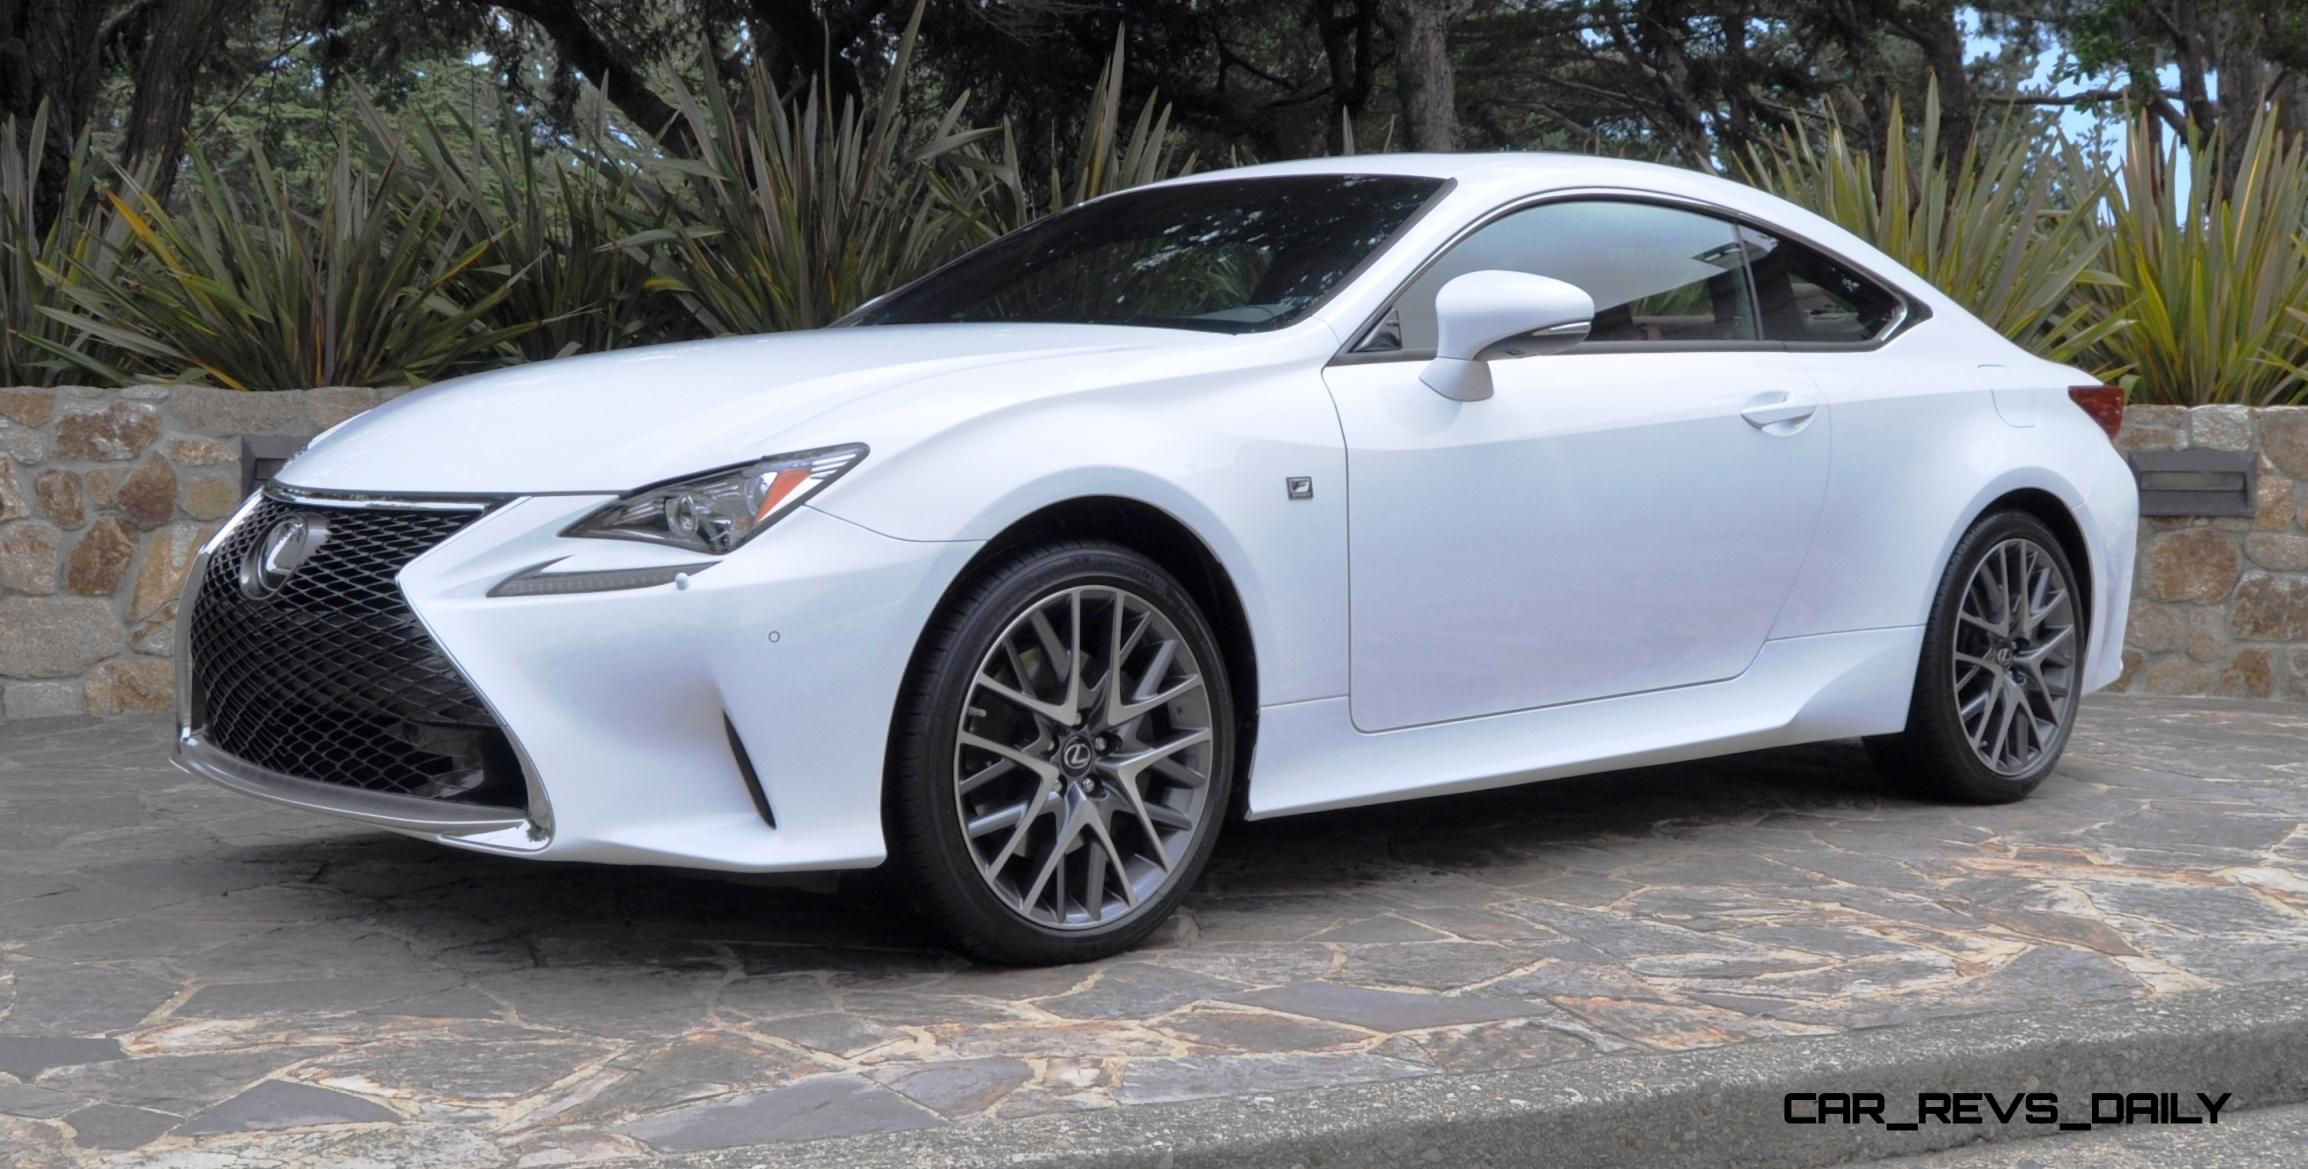 Elegant 2015 Lexus RC350 F Sport EXCLUSIVE 8 Speed Auto, AWD, 4WS And Adaptive  Suspension! 12